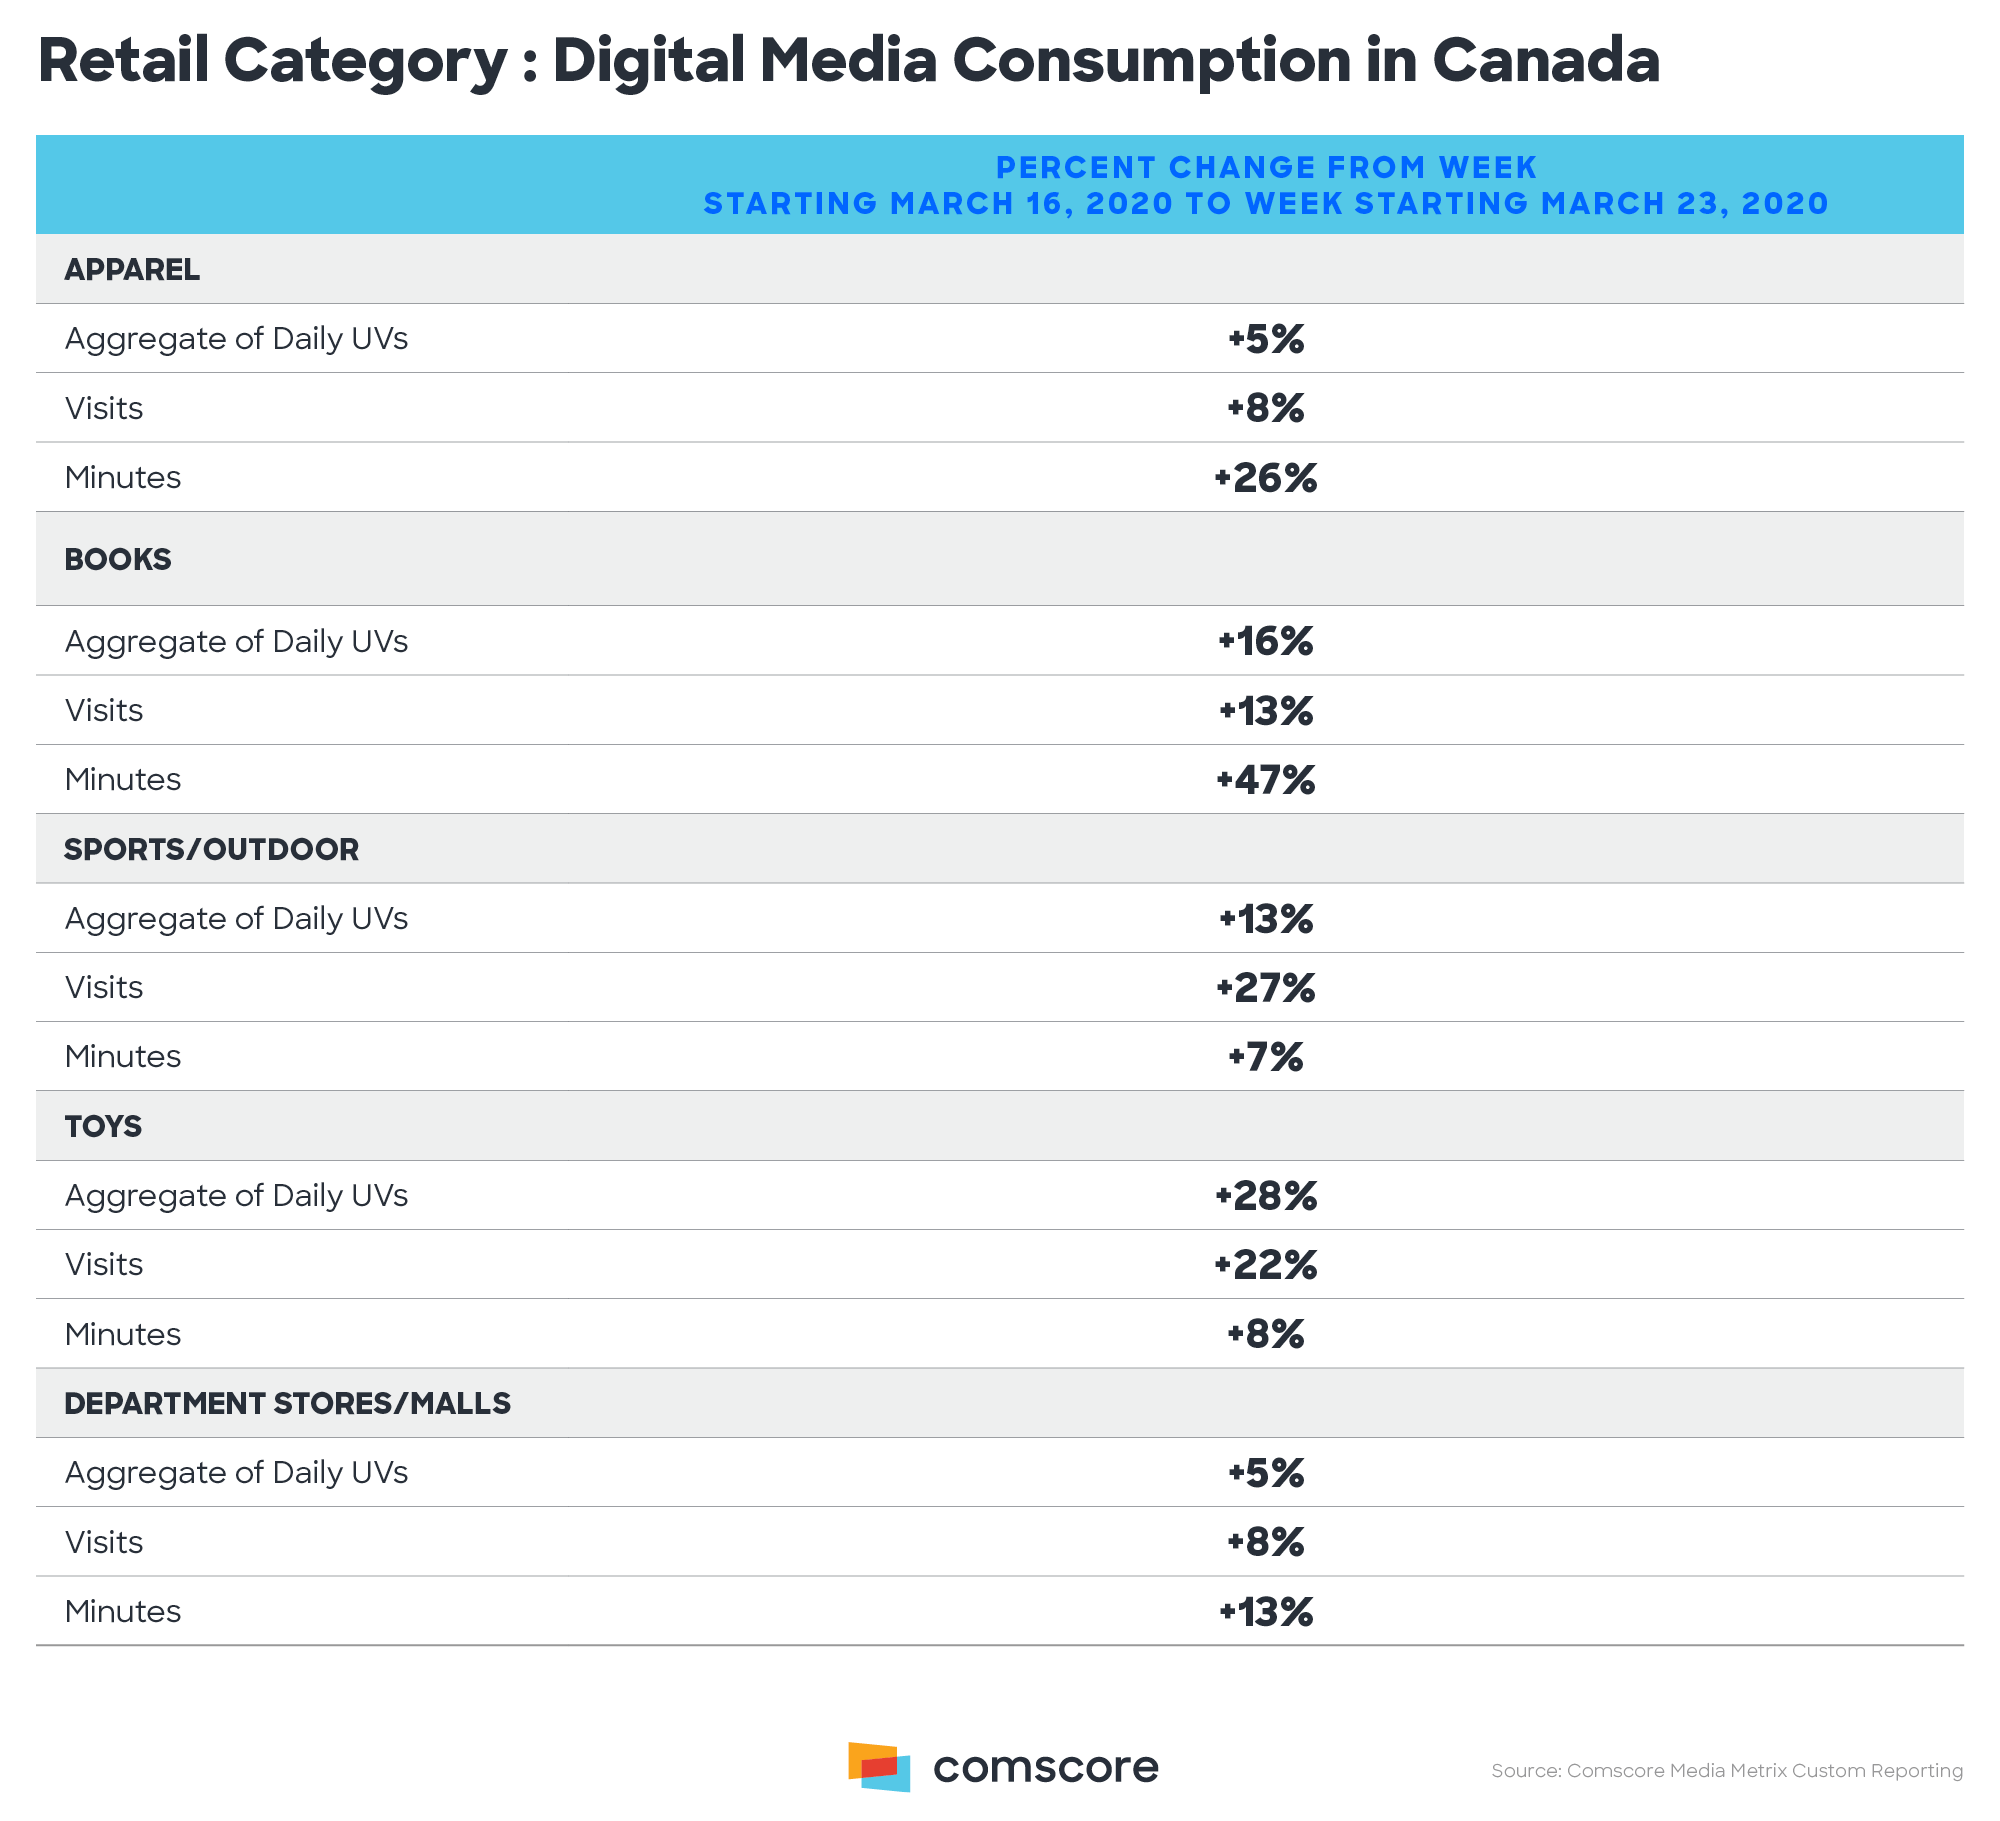 Retail Category Digital Media Consumption in Canada